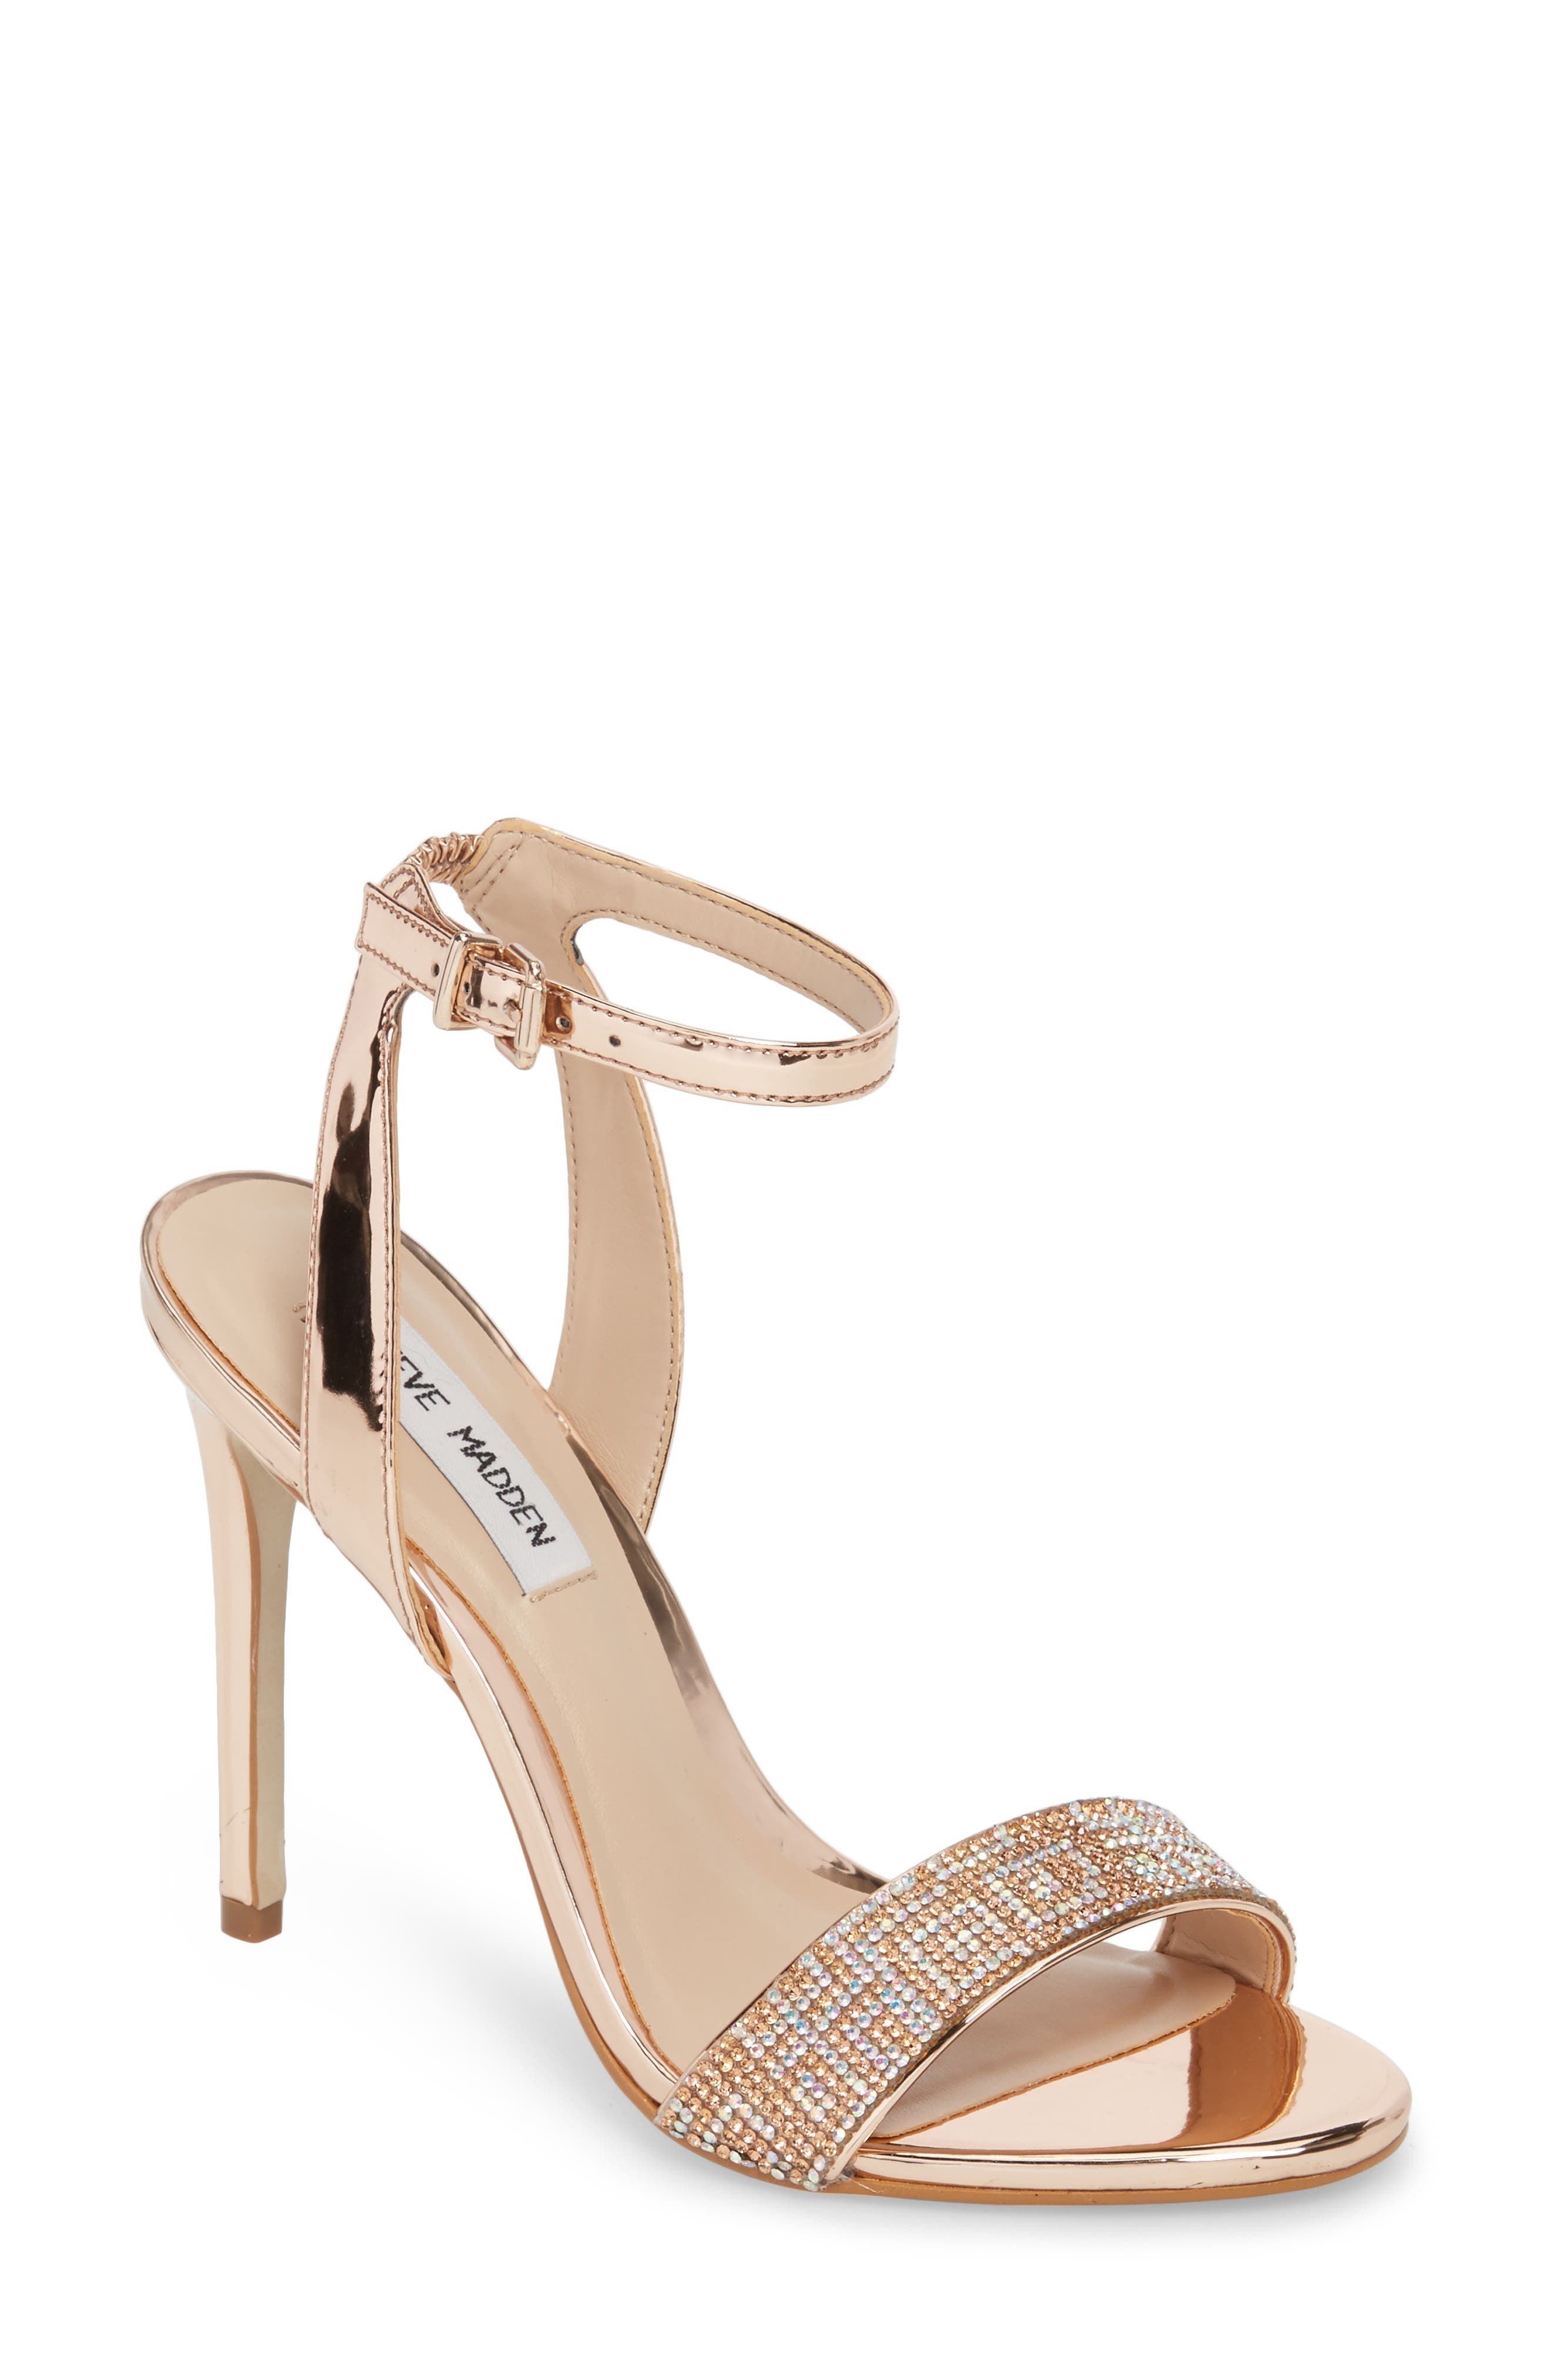 Leona Sandal,                         Main,                         color, Rose Gold Leather